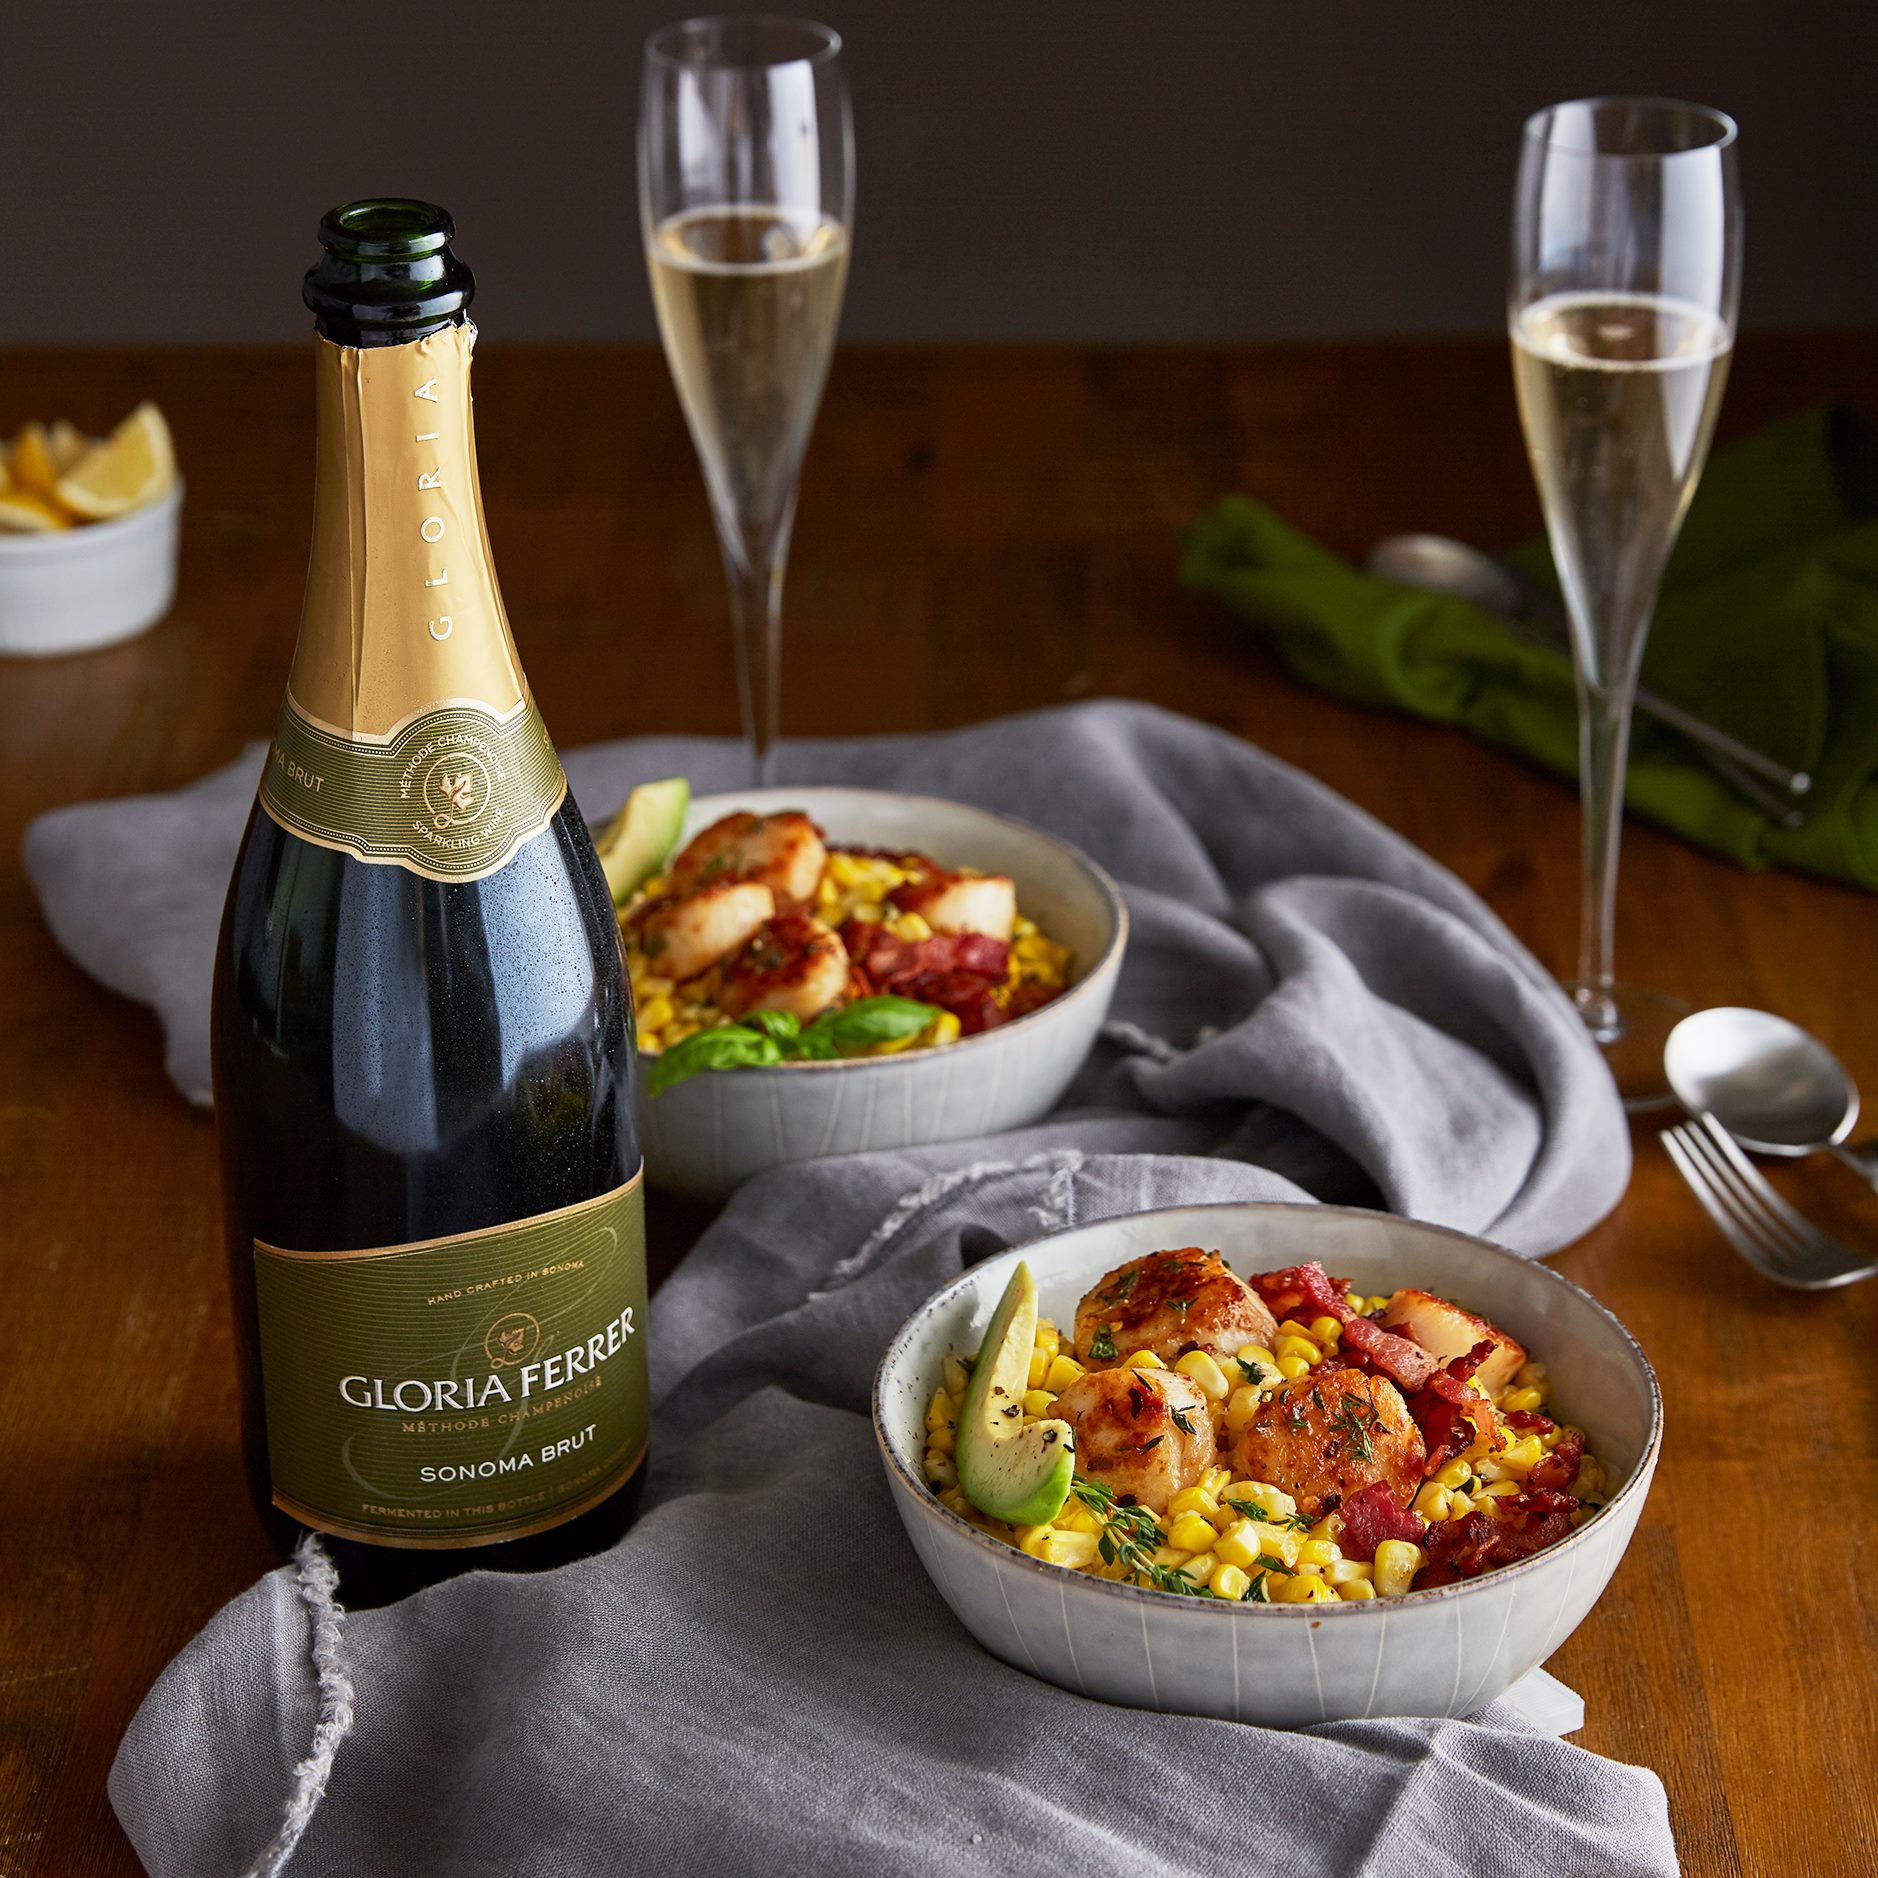 Gloria Ferrer Sonoma Brut & Brown Butter Scallop Salads with Corn, Bacon, and Avocado Salad